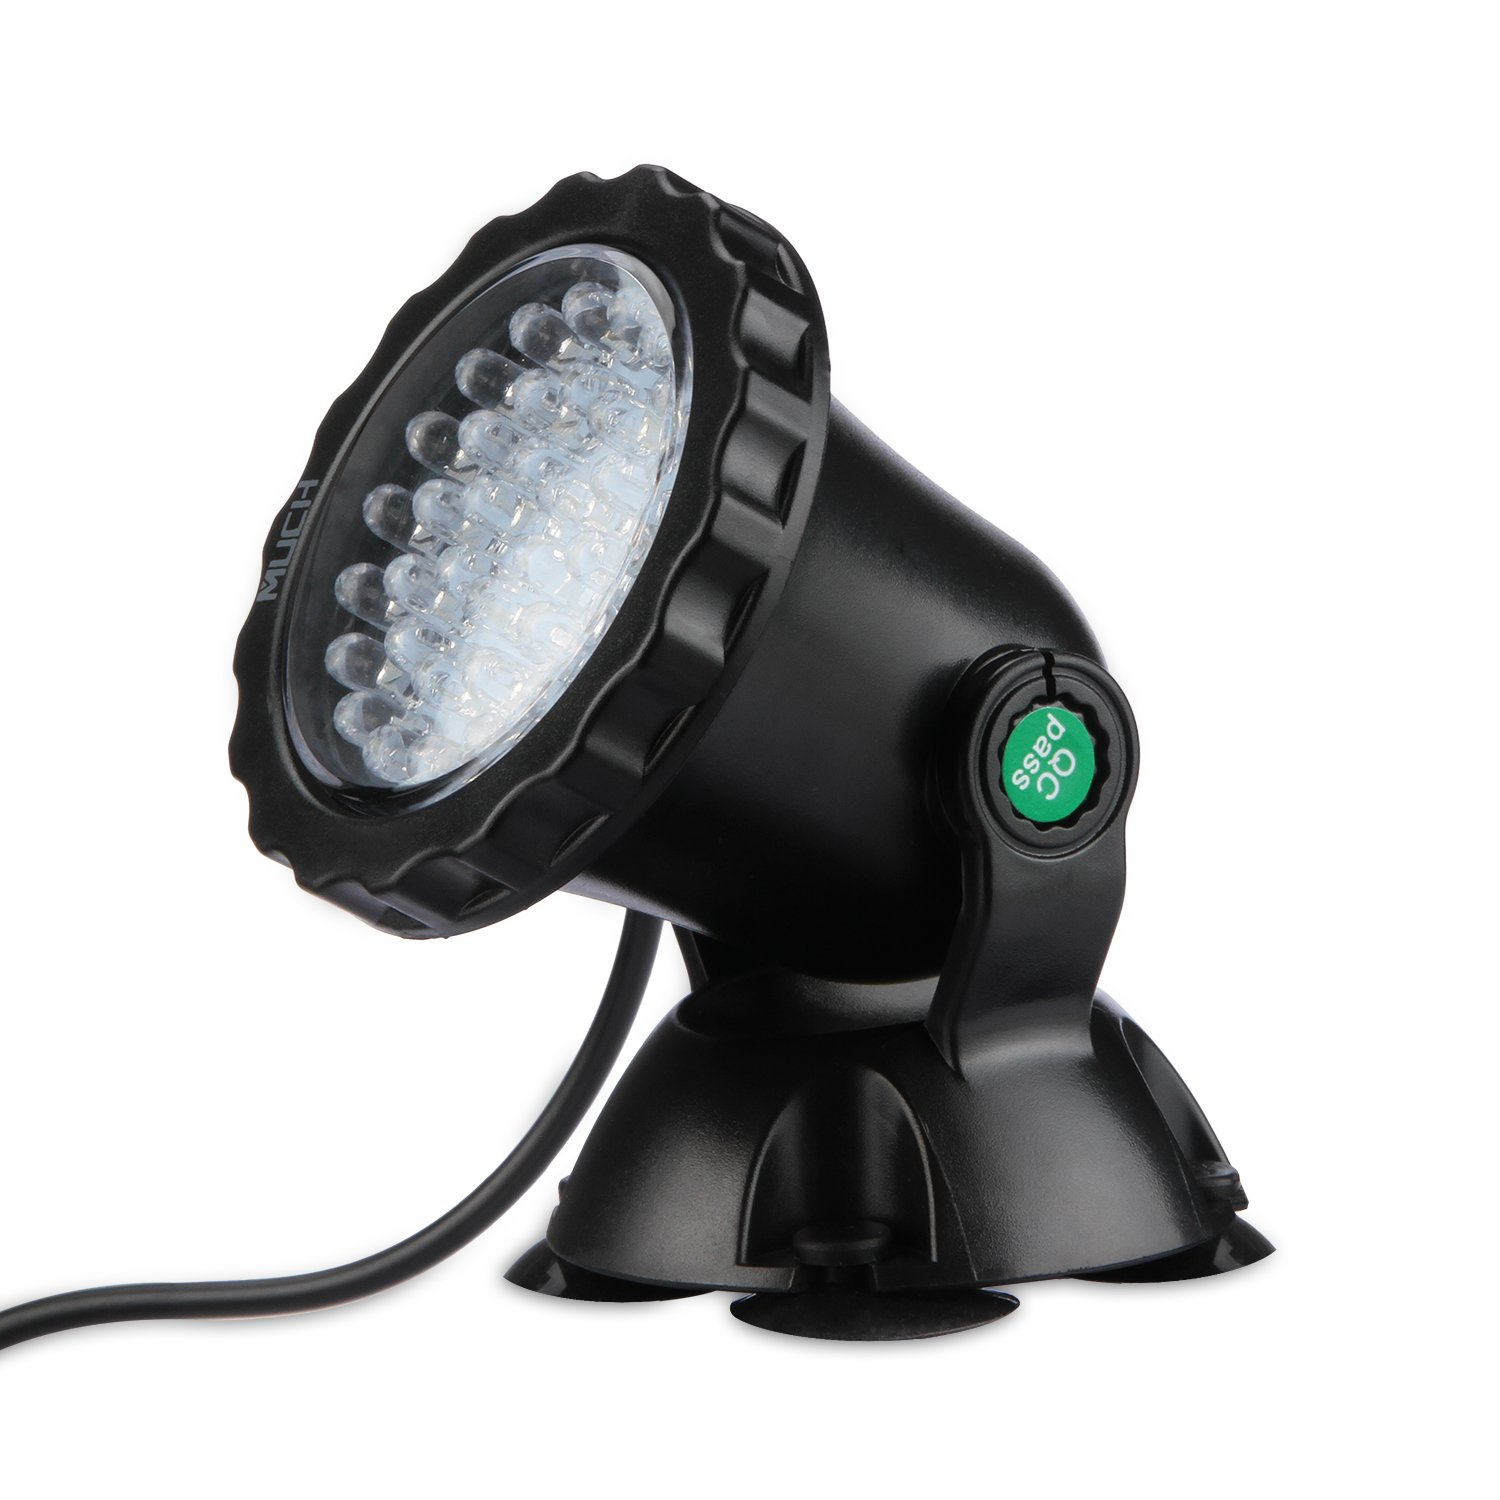 MUCH 36 LED Pond Lights Waterproof IP68 Submersible Spotlight Underwater Lights 2.5W Color Changing Spot Light for Aquarium Garden Pond Pool Tank